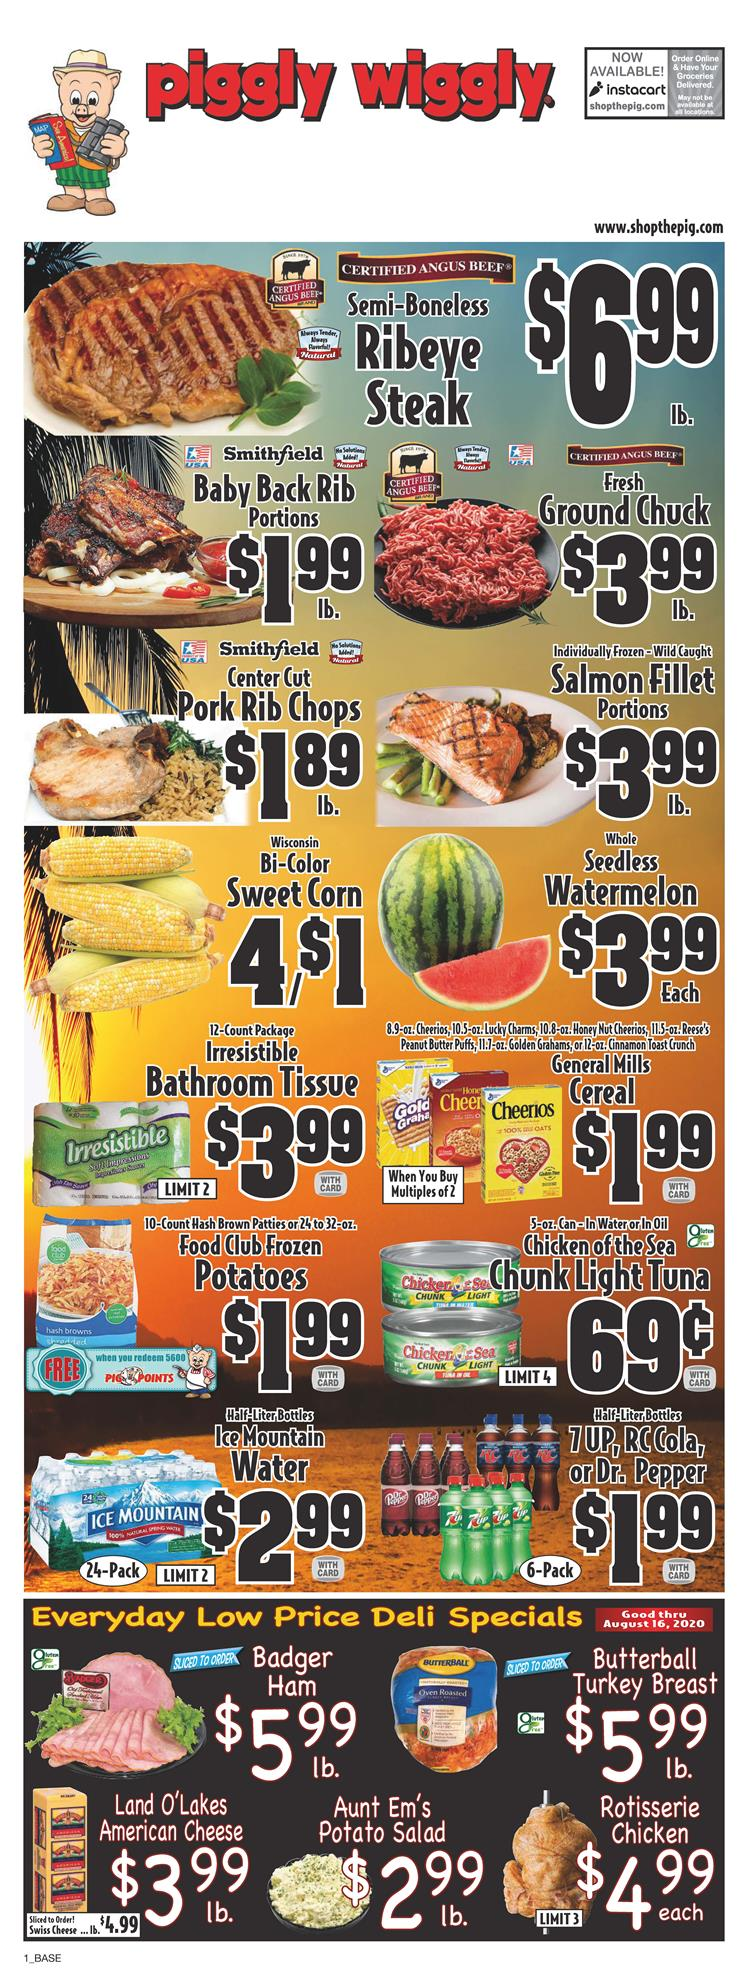 piggly wiggly august weekly ad valid from aug 5 11 2020